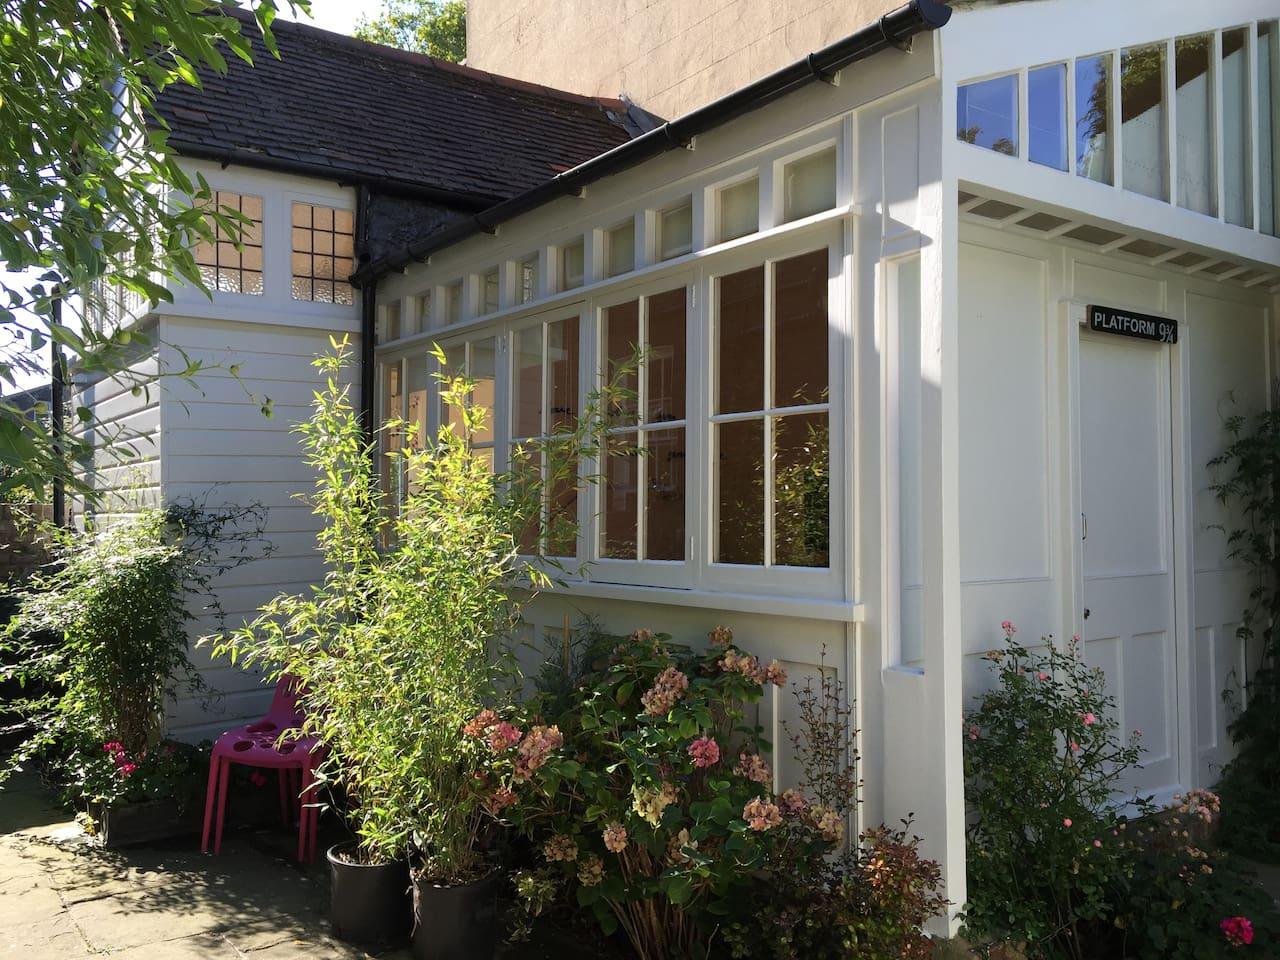 Outside view of the garden studio